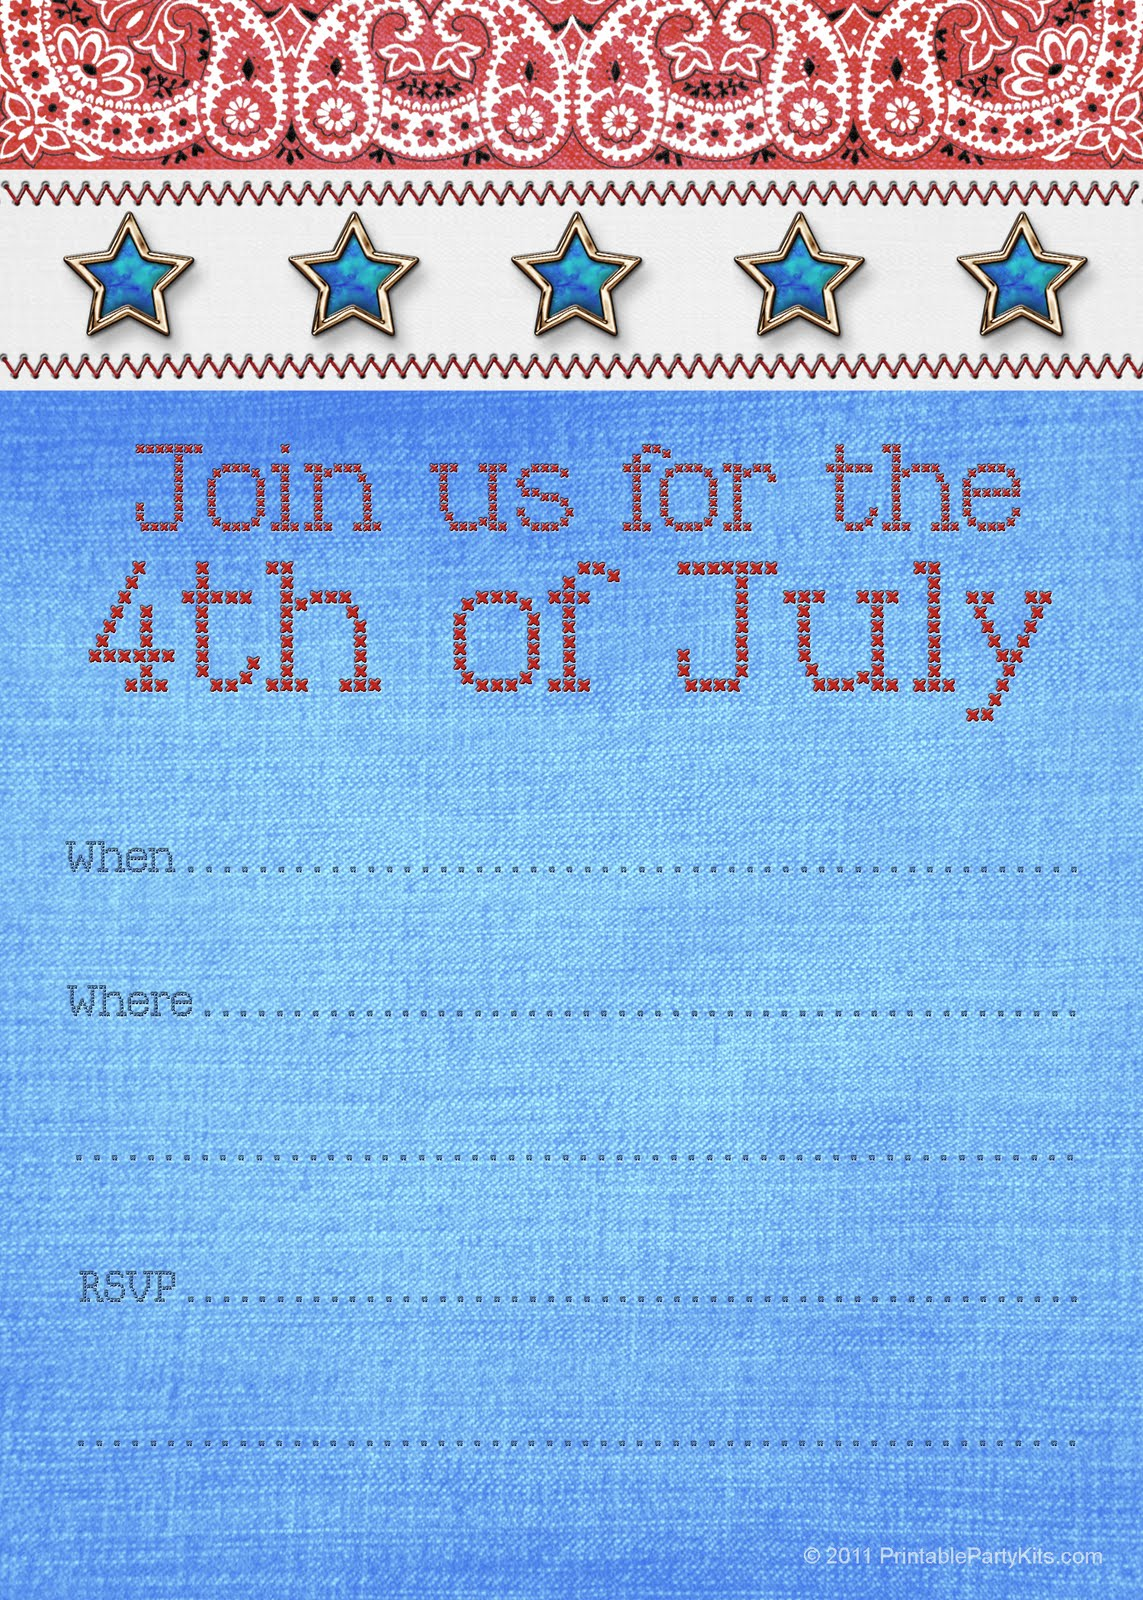 Free Printable Party Invitations: Fourth of July